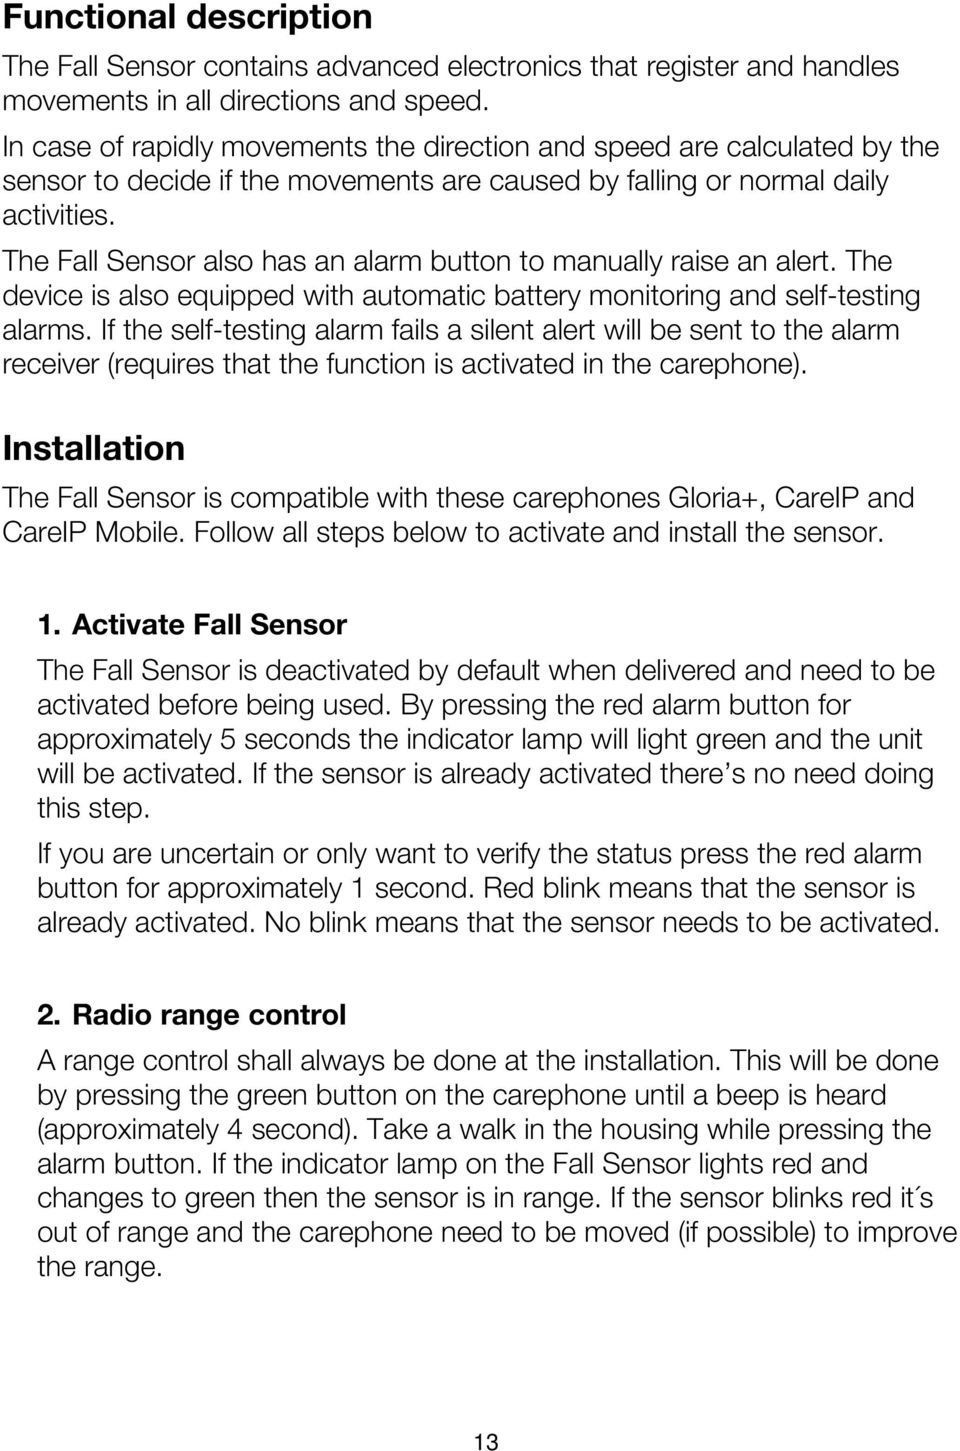 The Fall Sensor also has an alarm button to manually raise an alert. The device is also equipped with automatic battery monitoring and self-testing alarms.